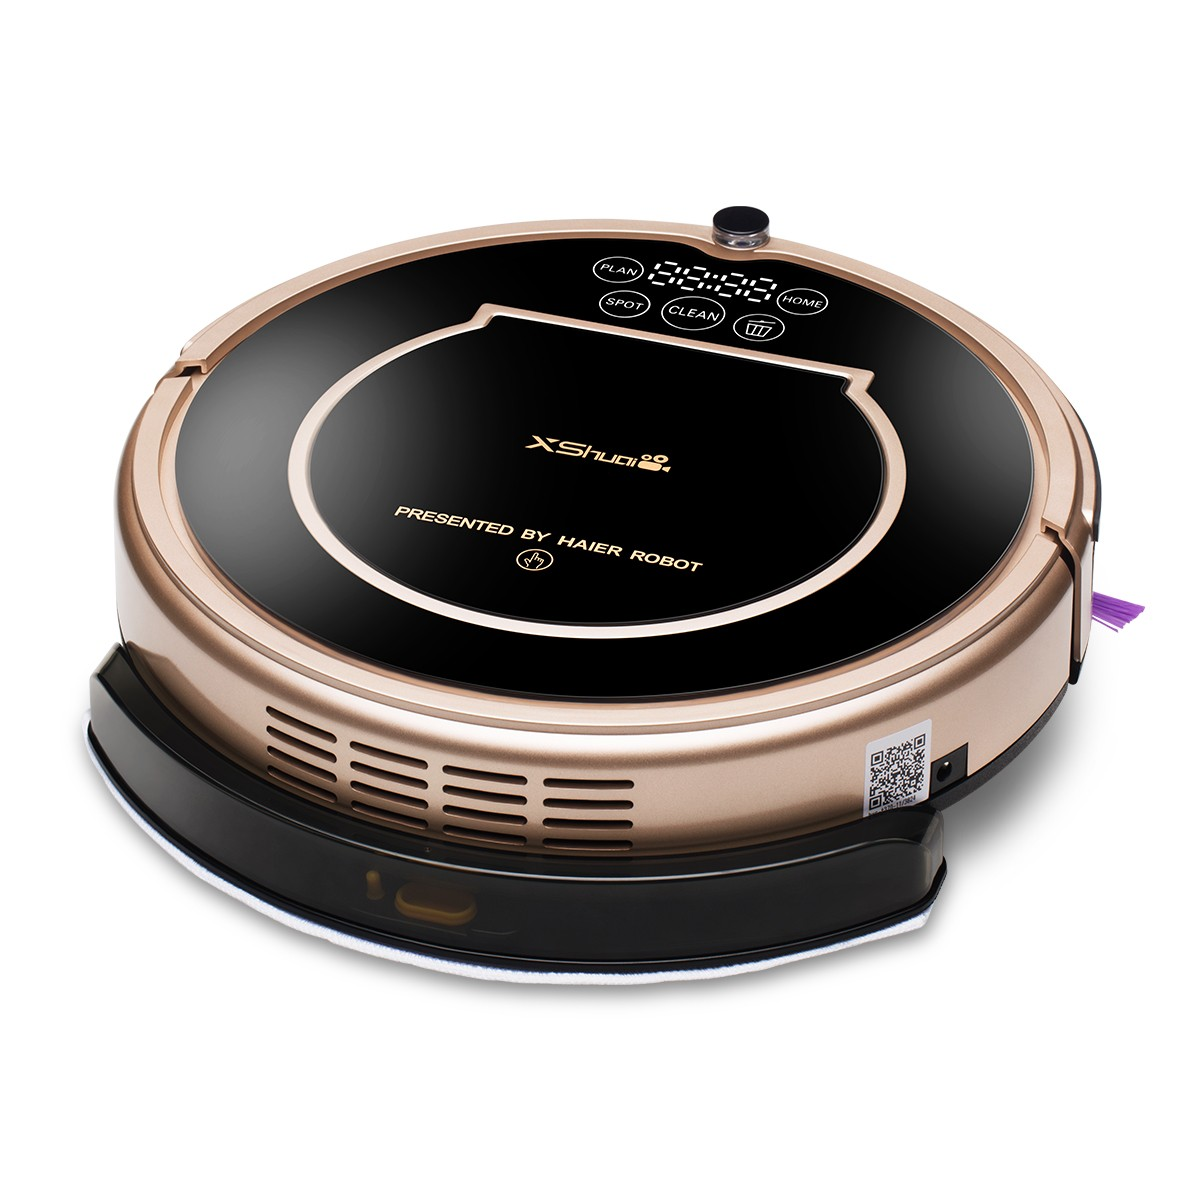 Details about Haier XShuai Wifi Alexa Voice Control Self Charging Smart Robot Vacuum Cleaner